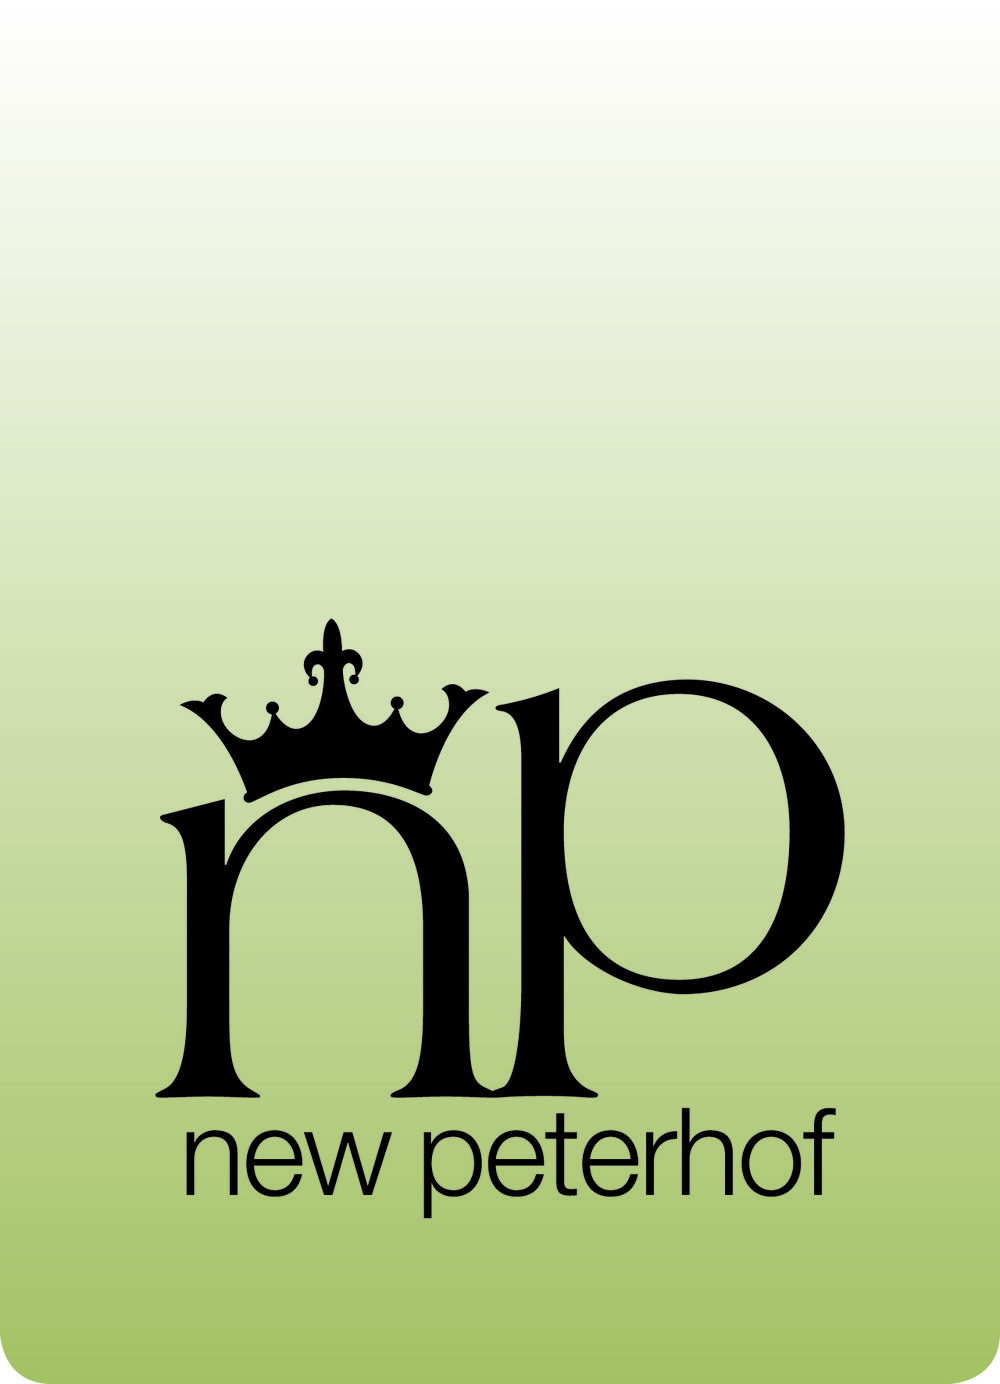 New Peterhof Hotel LOGO.jpg